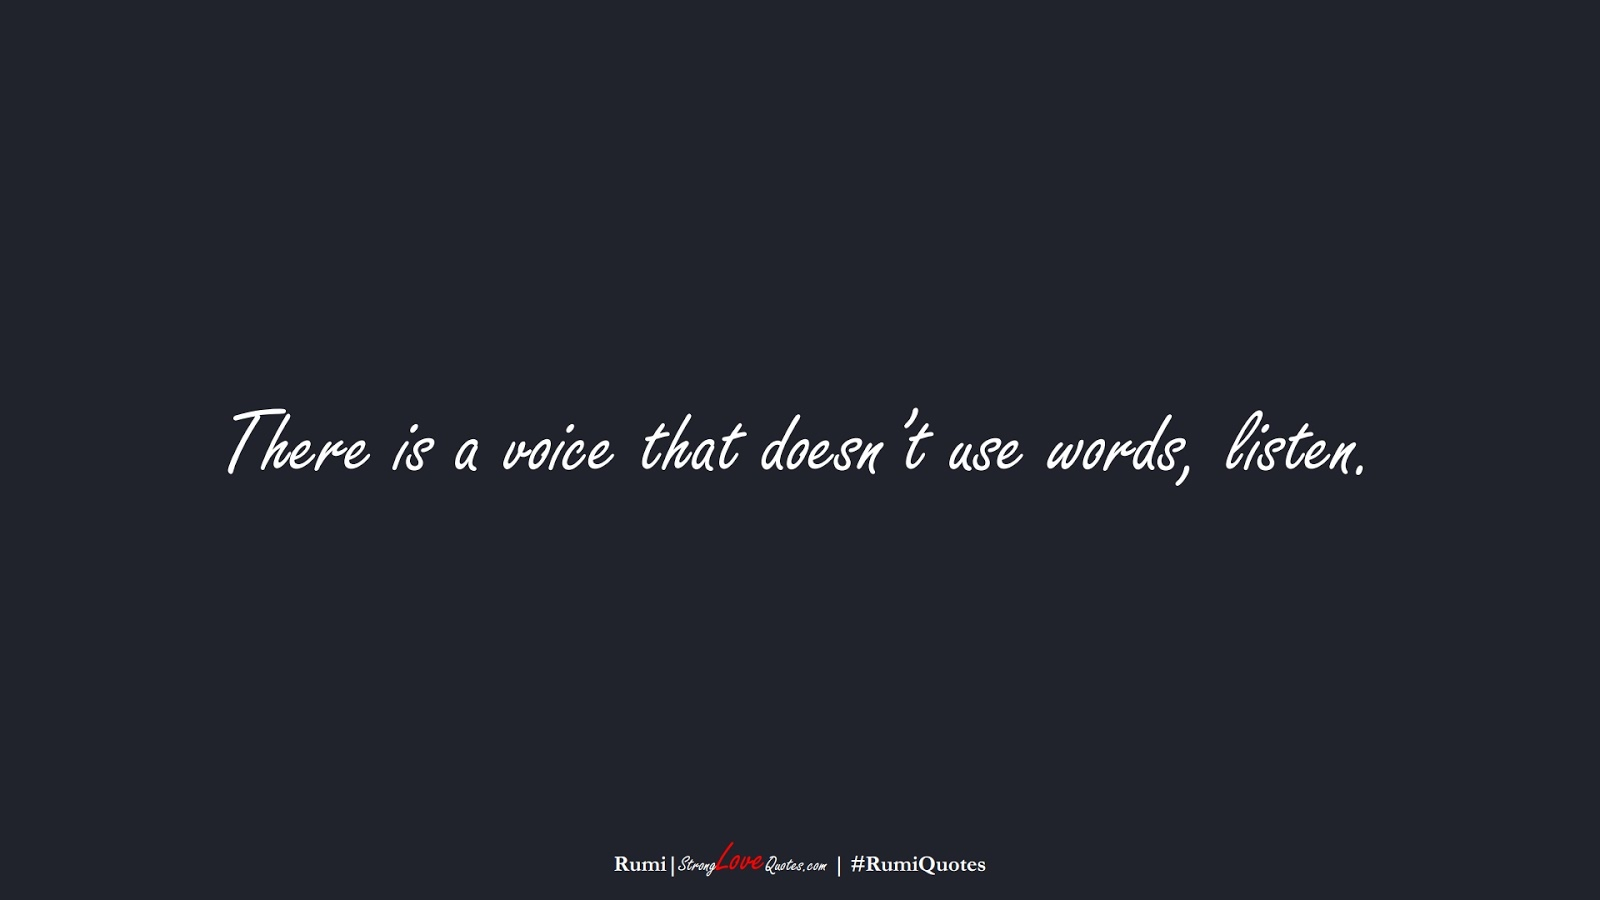 There is a voice that doesn't use words, listen. (Rumi);  #RumiQuotes